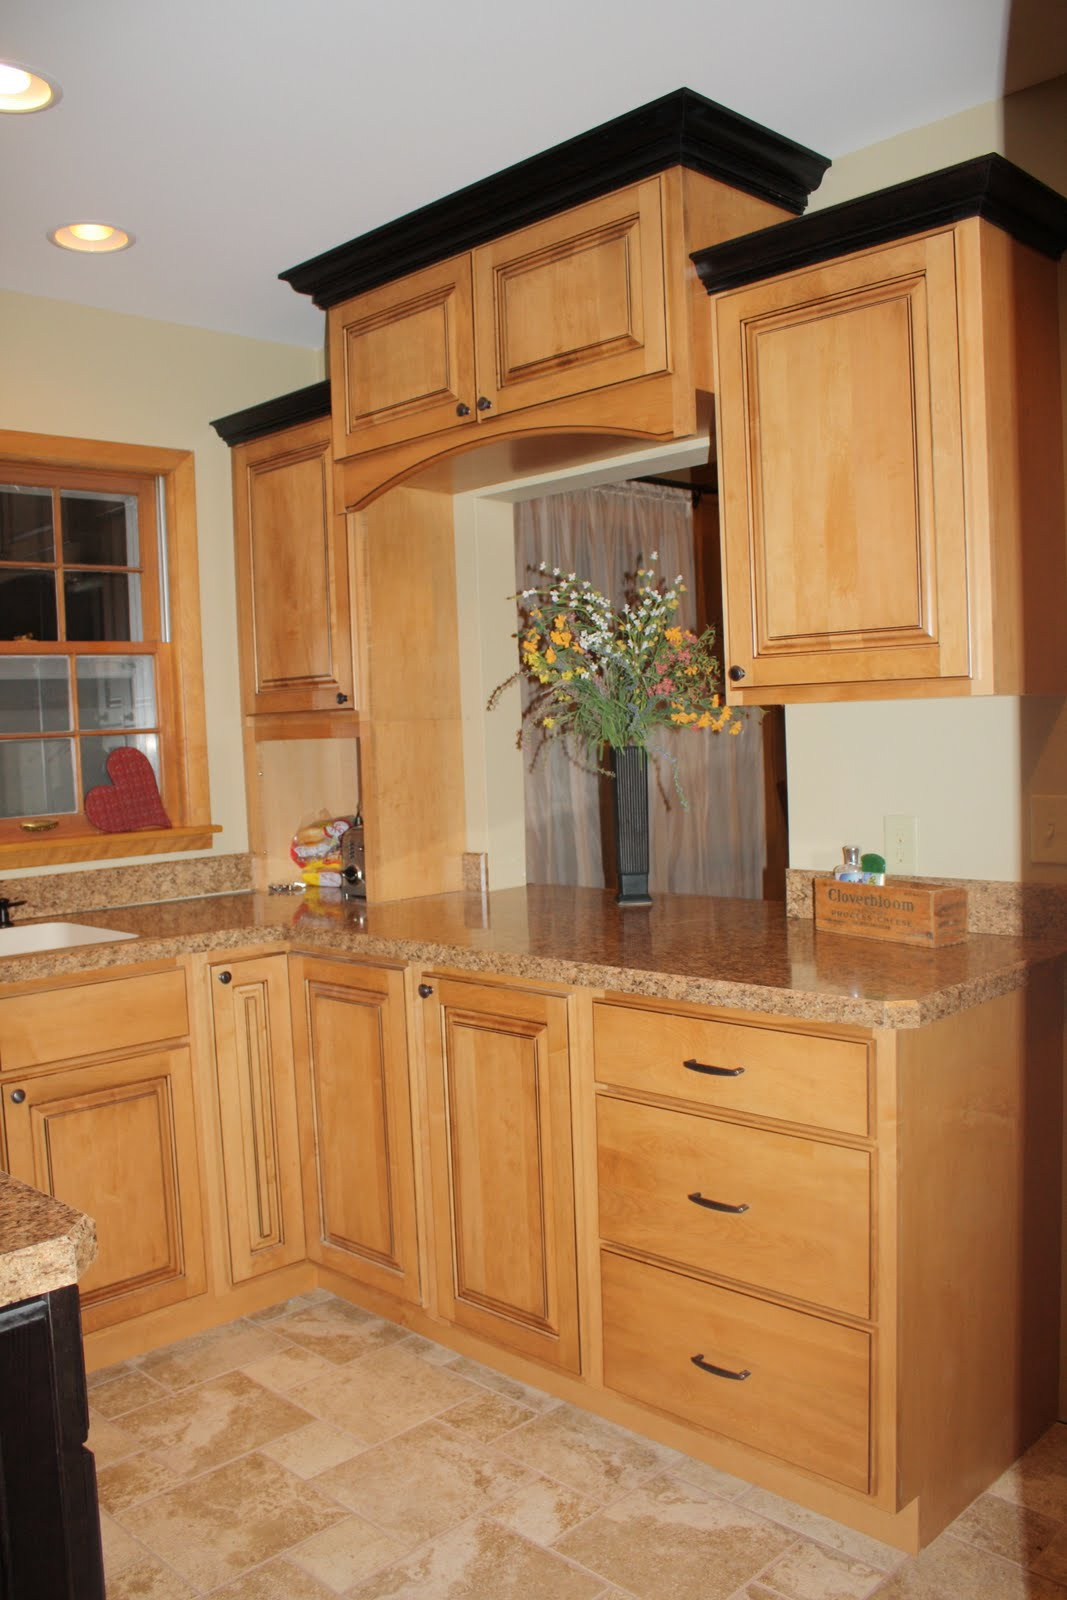 Decorative Molding Kitchen Cabinets Storage Carts The Huinker Family Blog May 2011